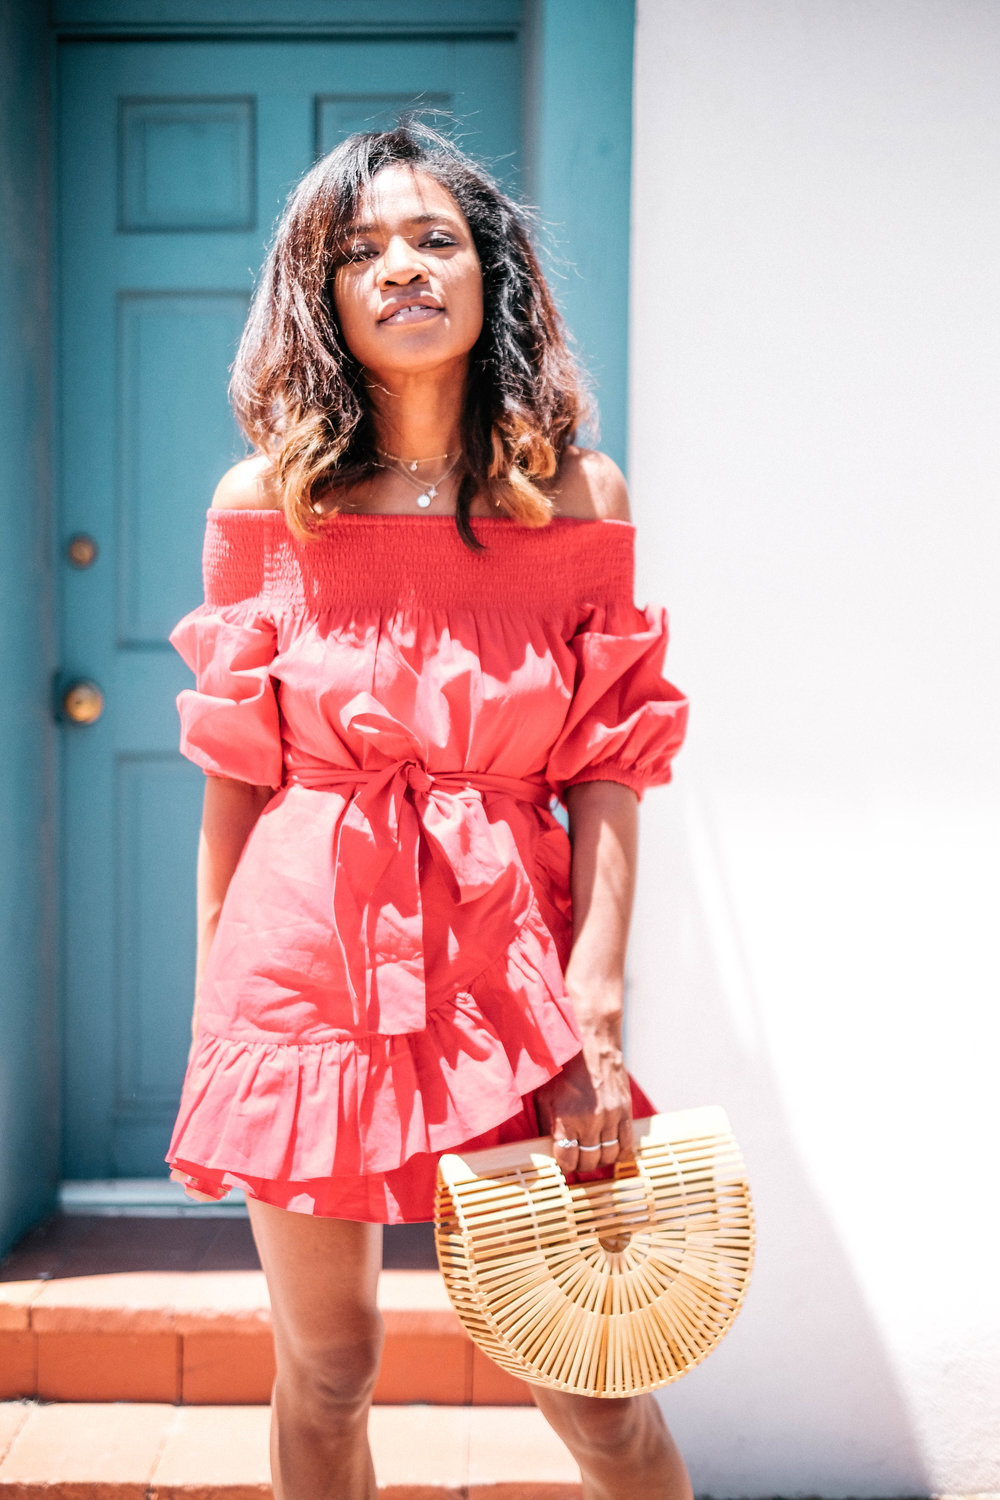 """Currently, I've been obsessed with the color red. Believe it or not, I rarely had anything red in my wardrobe up until this past year. Now, everything is red...I feel like it's a color of this summer and it goes really well as a backdrop to floral, gingham and polka dot patterns. Funny enough, I thought of Spain when I bought this Tularosa dress. I thought it was very """"Flamenco dancer-esque"""". I am so glad I bought it but it does wrinkle easily so keep that in mind. Have fun with the color red this season! It might just surprise you. *kisses* - Cristal"""